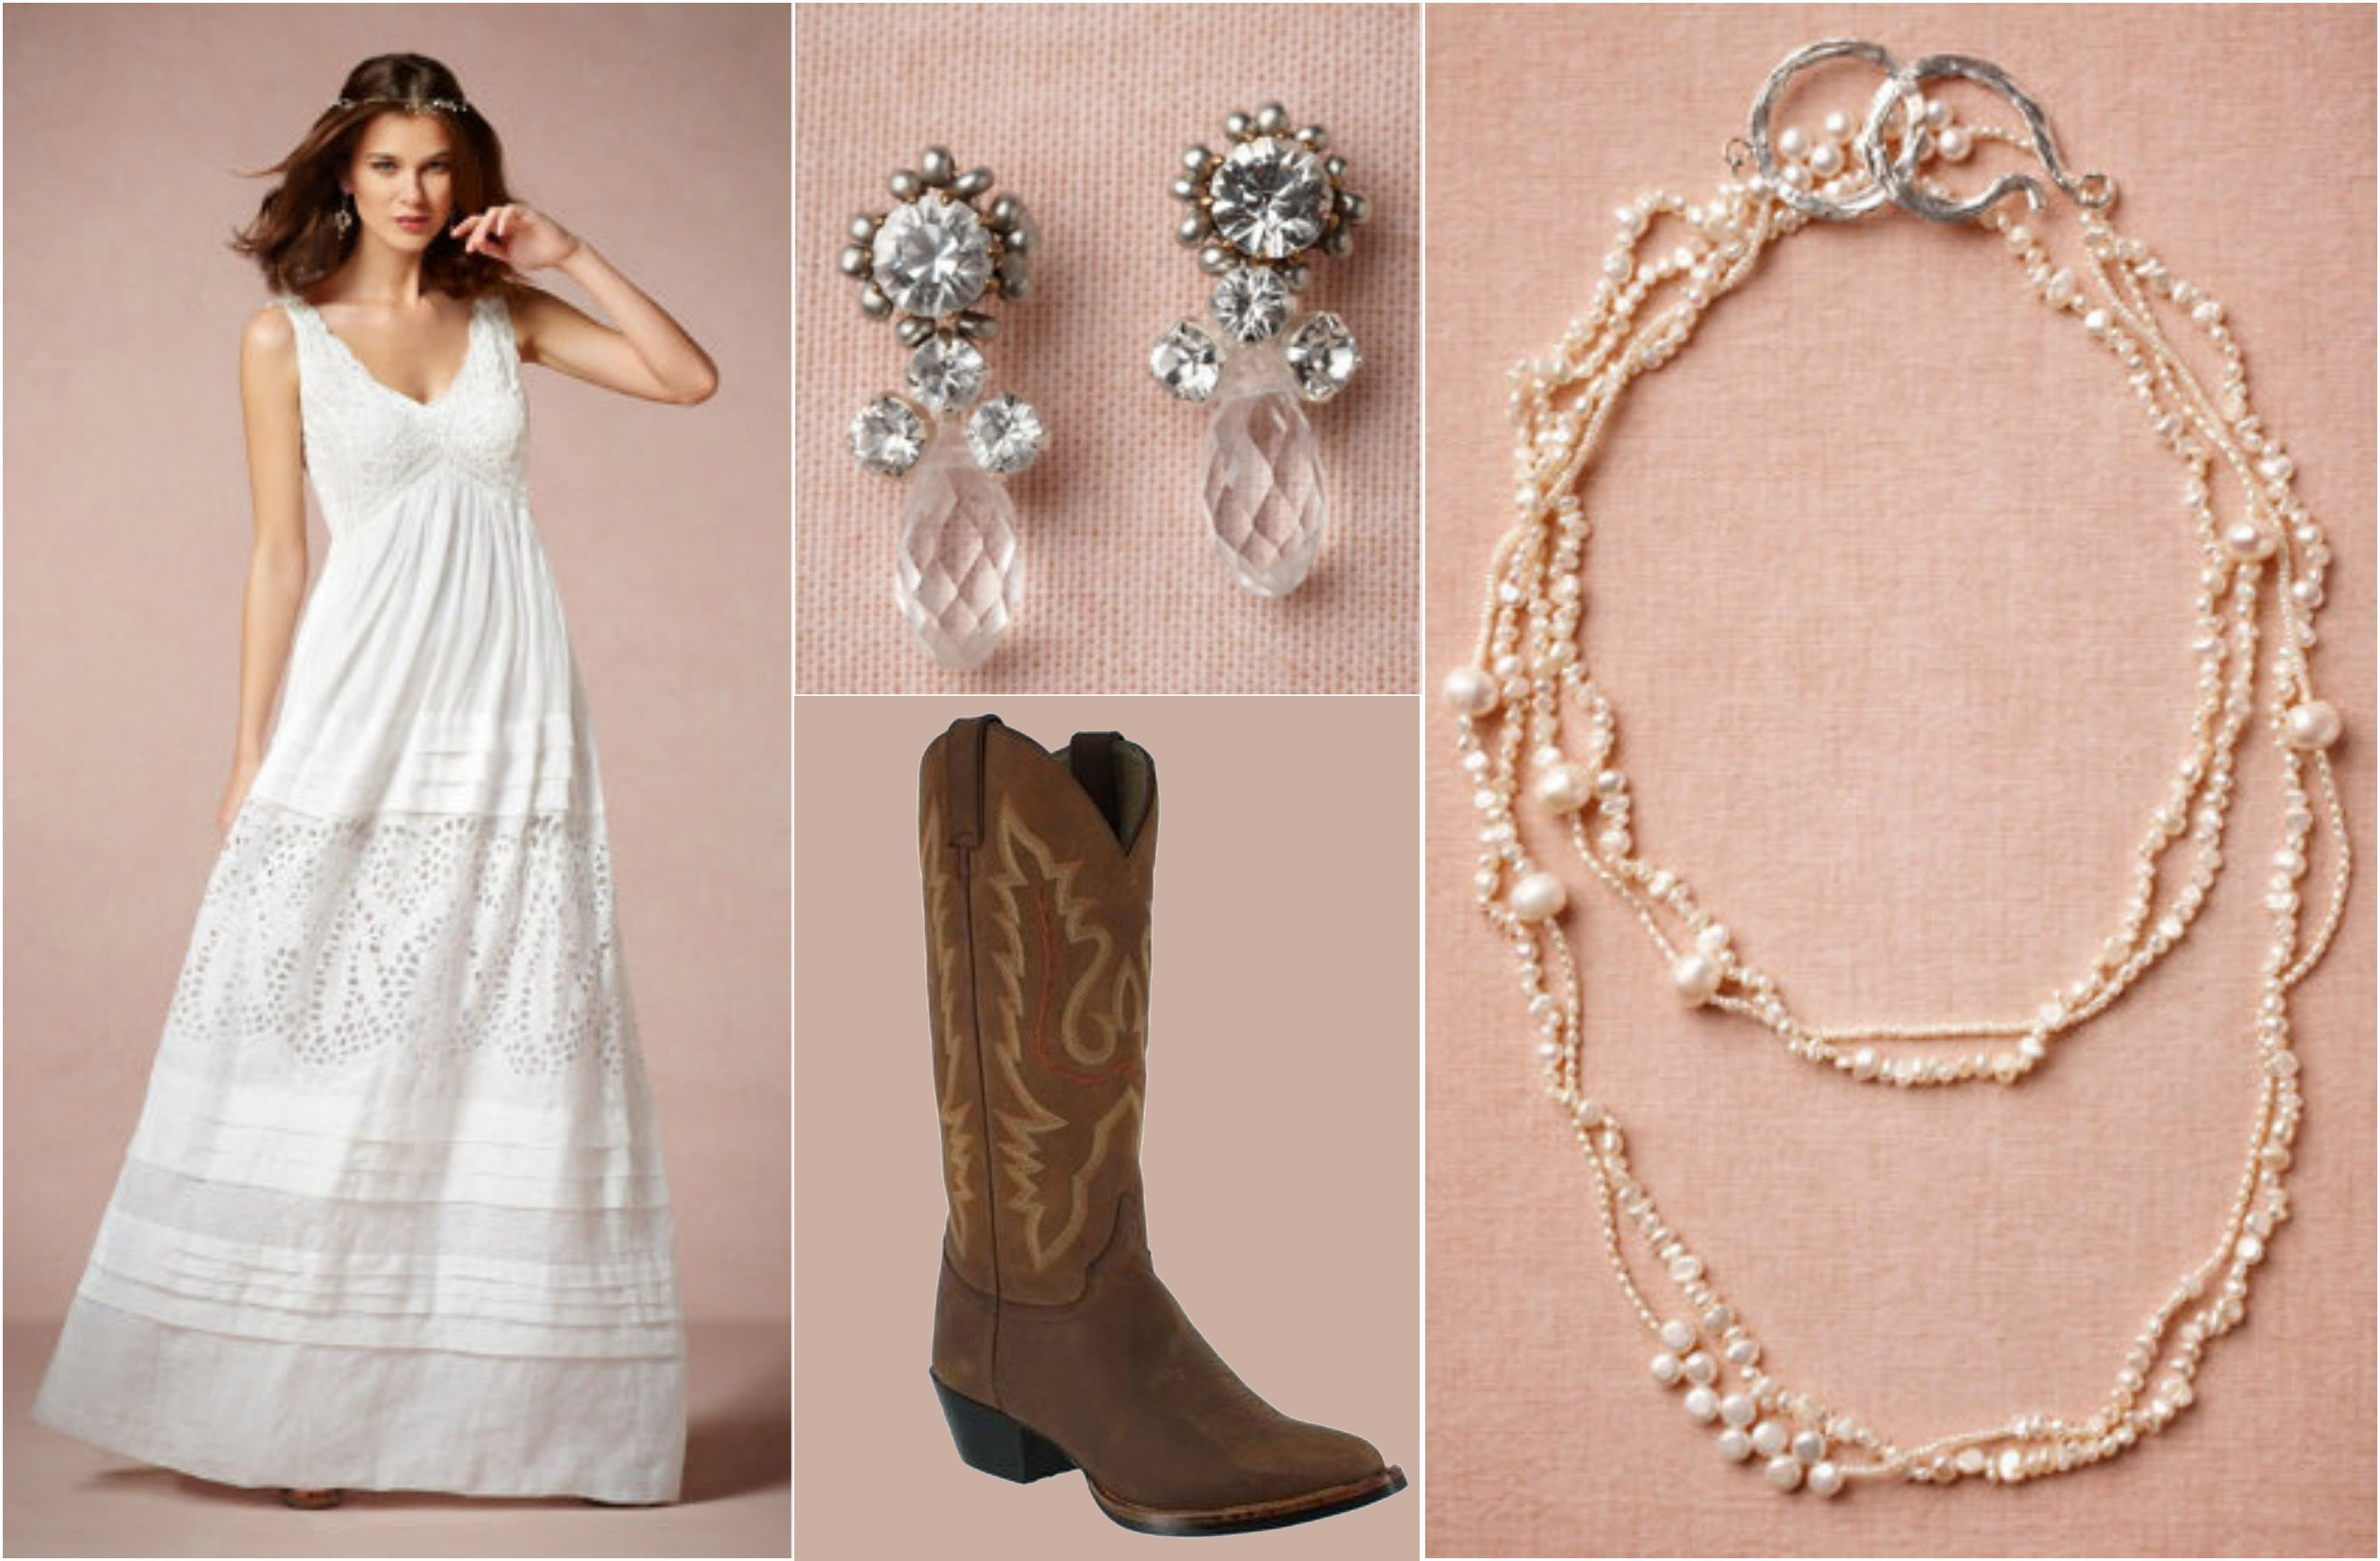 Ask Maggie: Wedding Dress With Cowboy Boots - Rustic Wedding Chic